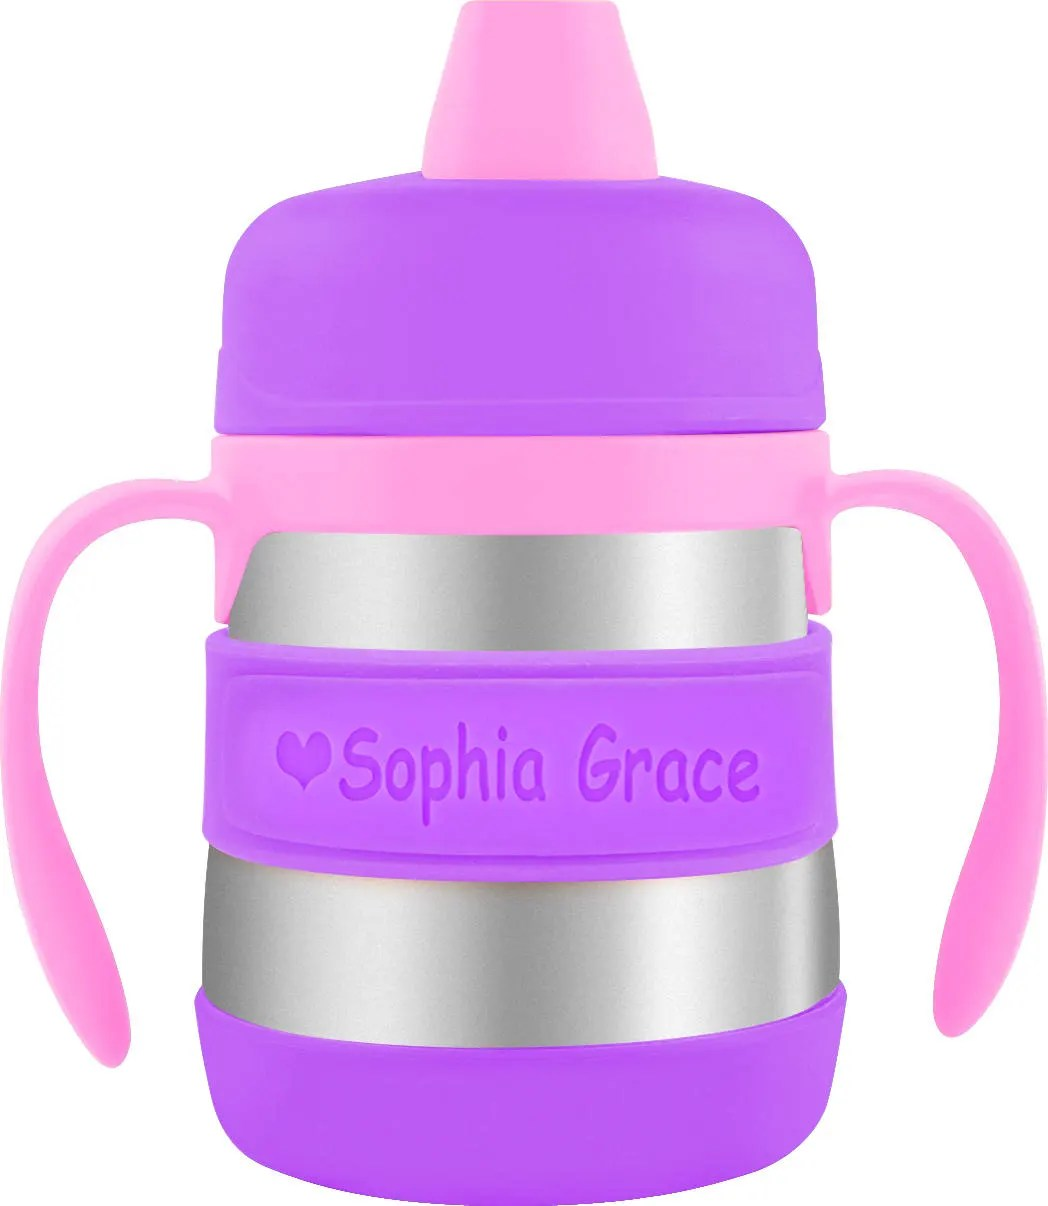 Personalized Baby Bottle Labels  Sippy Cup Labels (2 PACK)